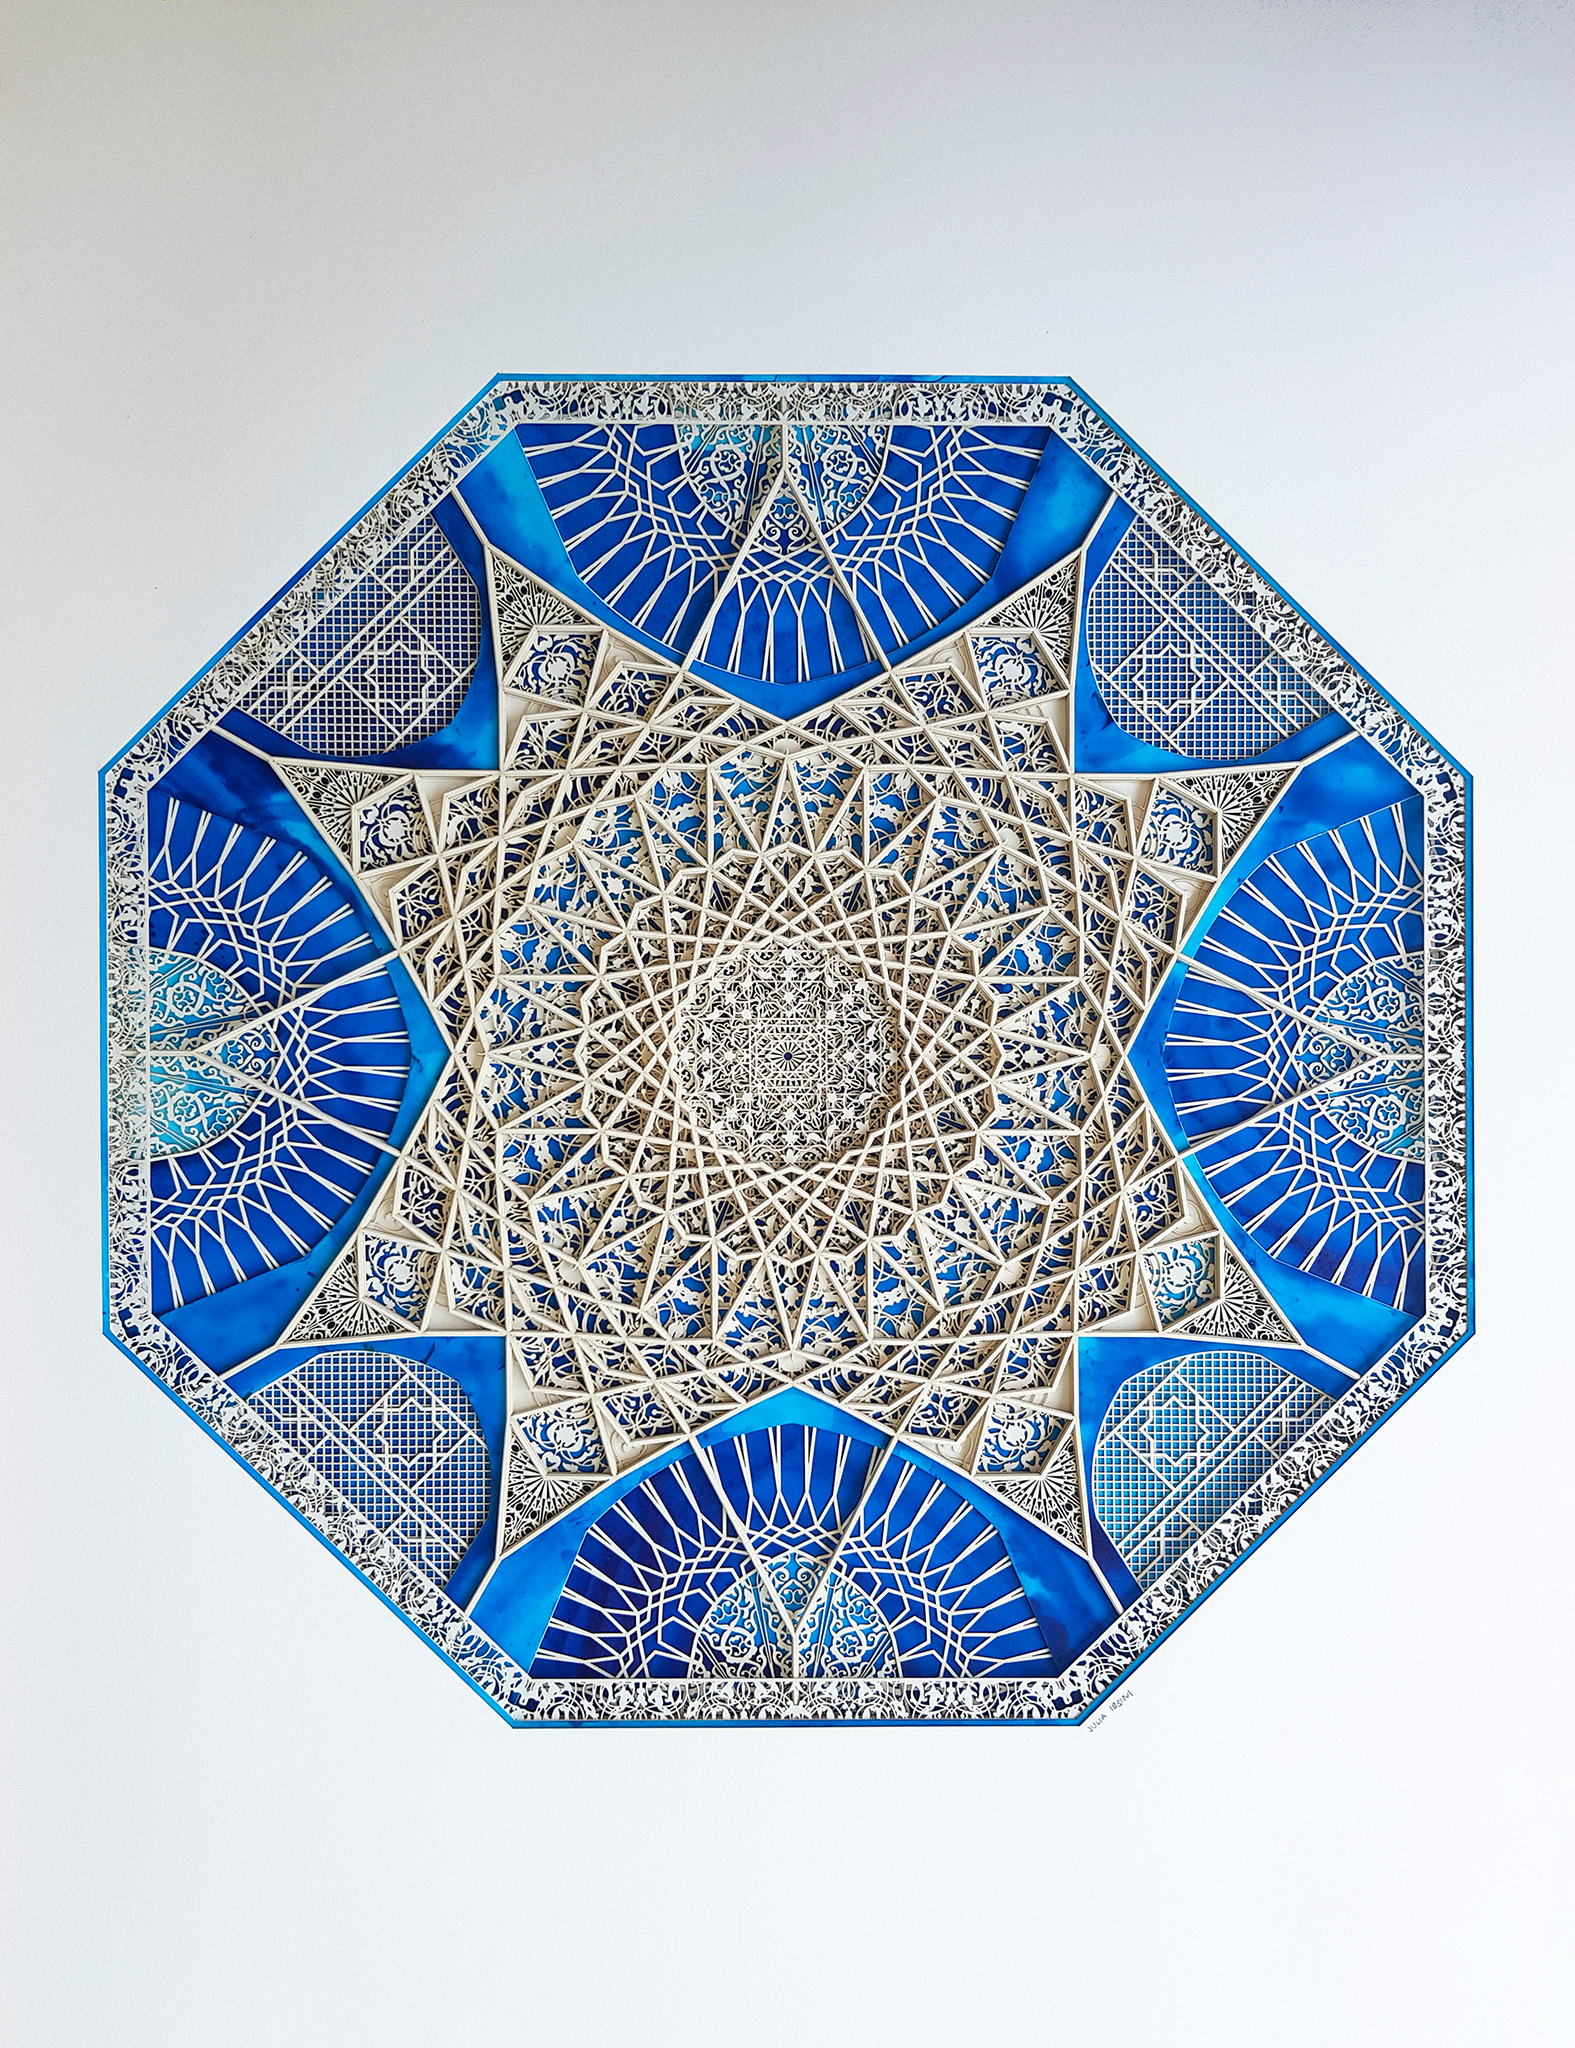 Julia Ibbini - The Sultan - 78cm x 90cm - Lasercut Papers over Ink on Mylar - AED 11,000.jpg